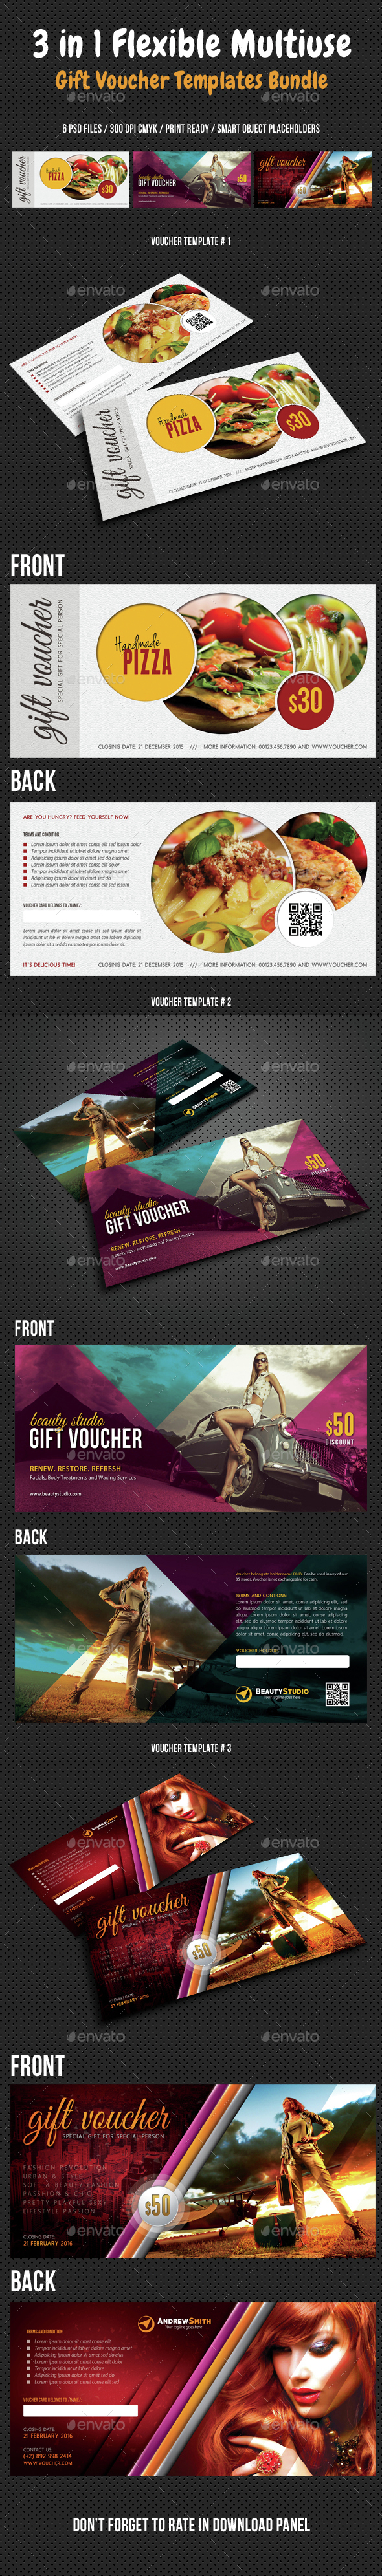 3 in 1 Flexible Multiuse Gift Voucher Bundle 02 - Cards & Invites Print Templates